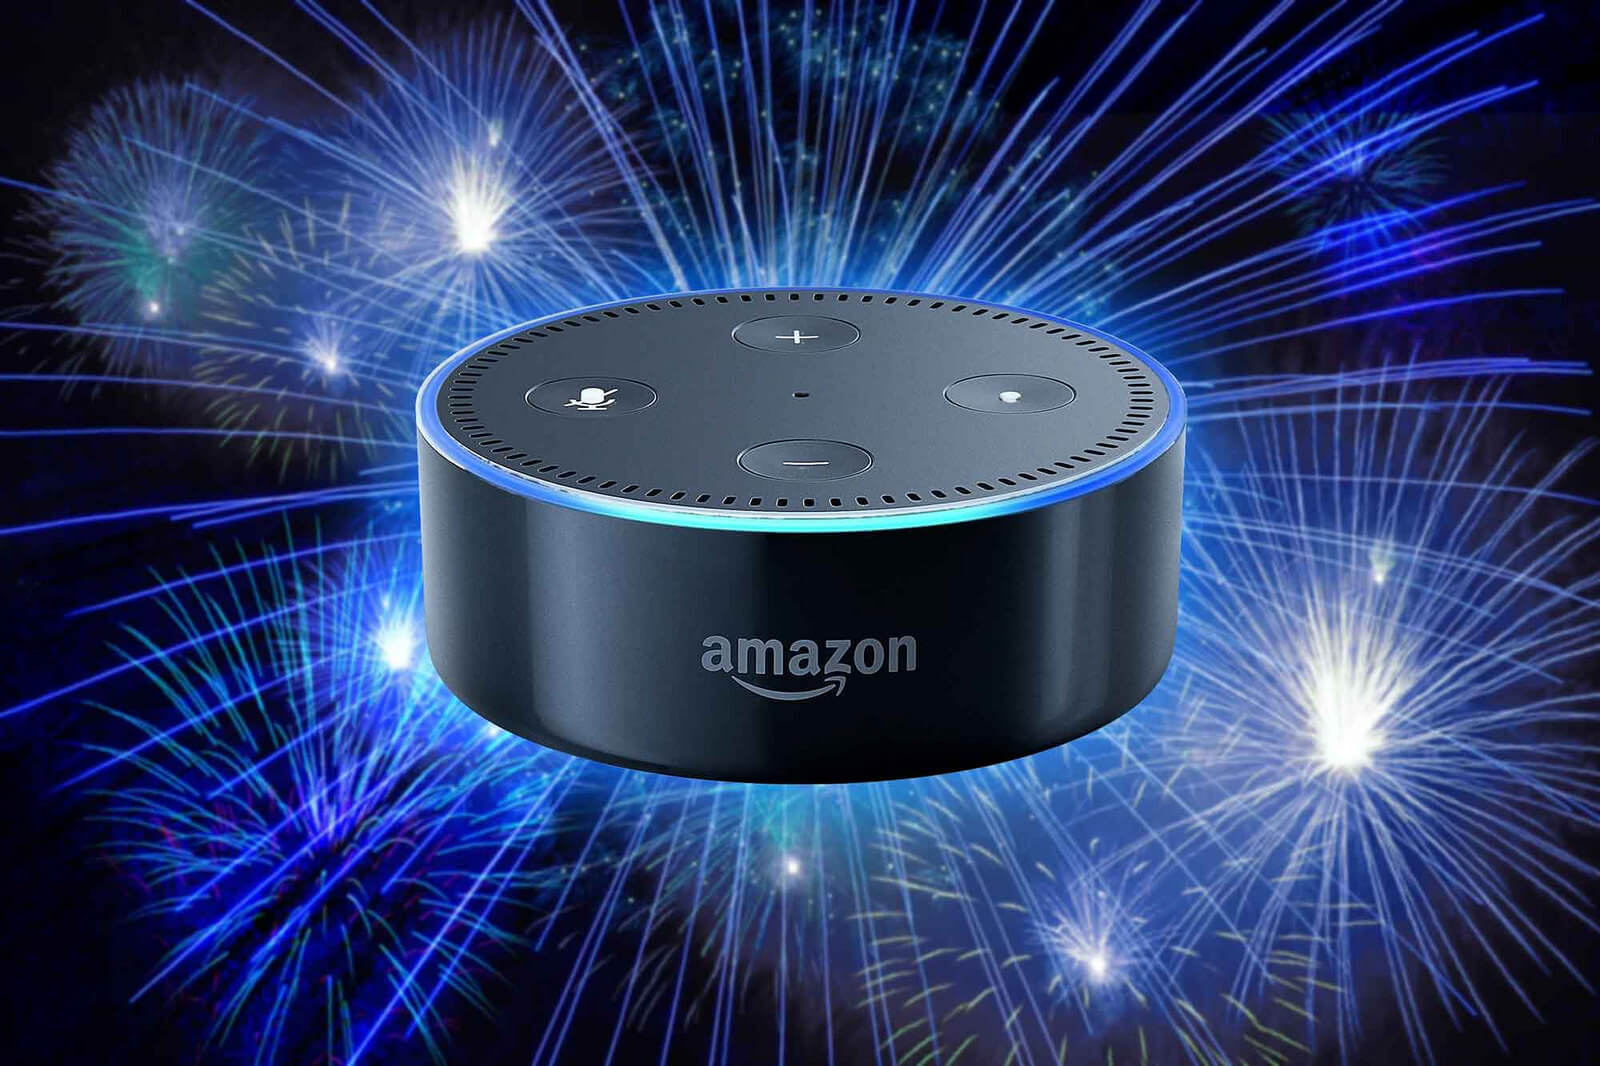 What Home Control Assistant Systems Work With Alexa? - Alexa